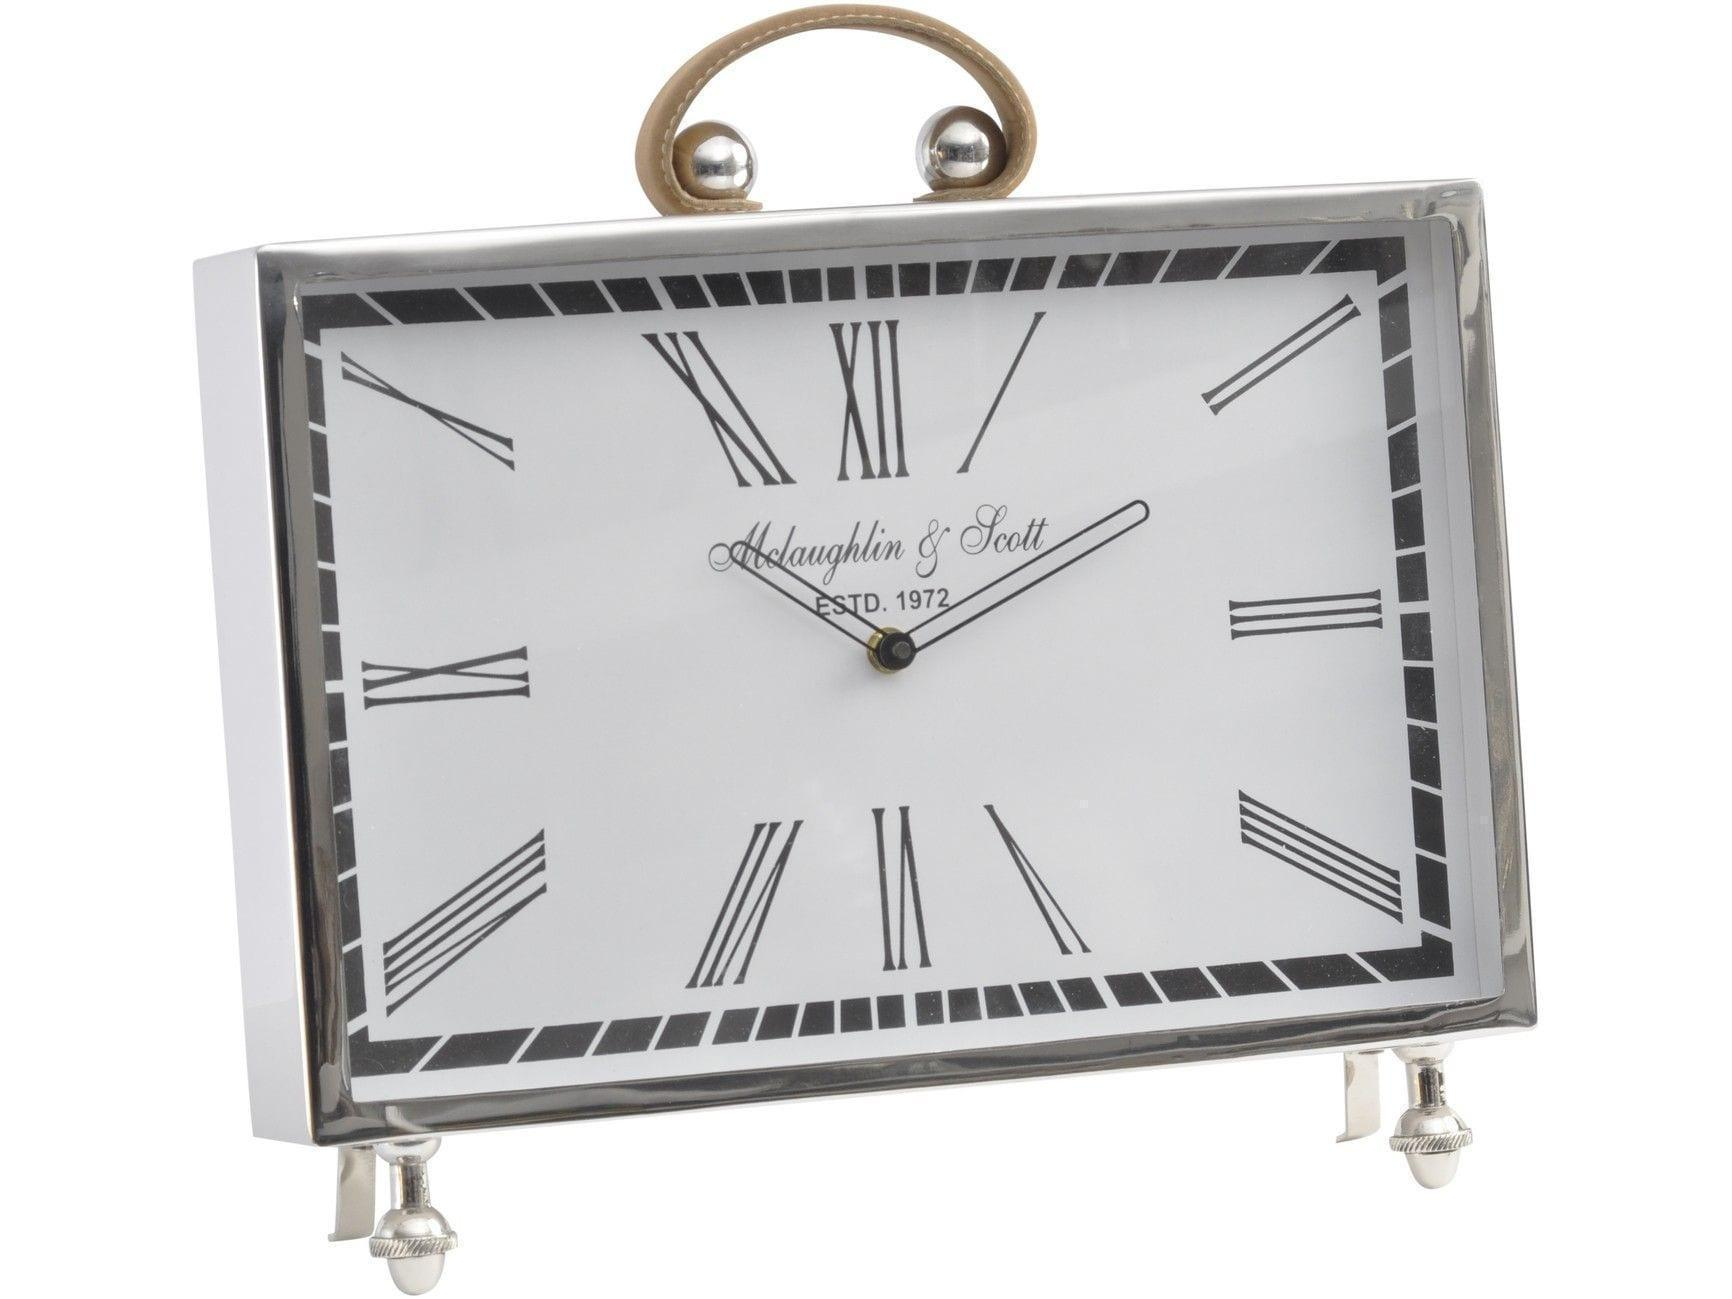 Mclaughlin Amp Scott Leather Handle Chrome Mantel Clock Roman